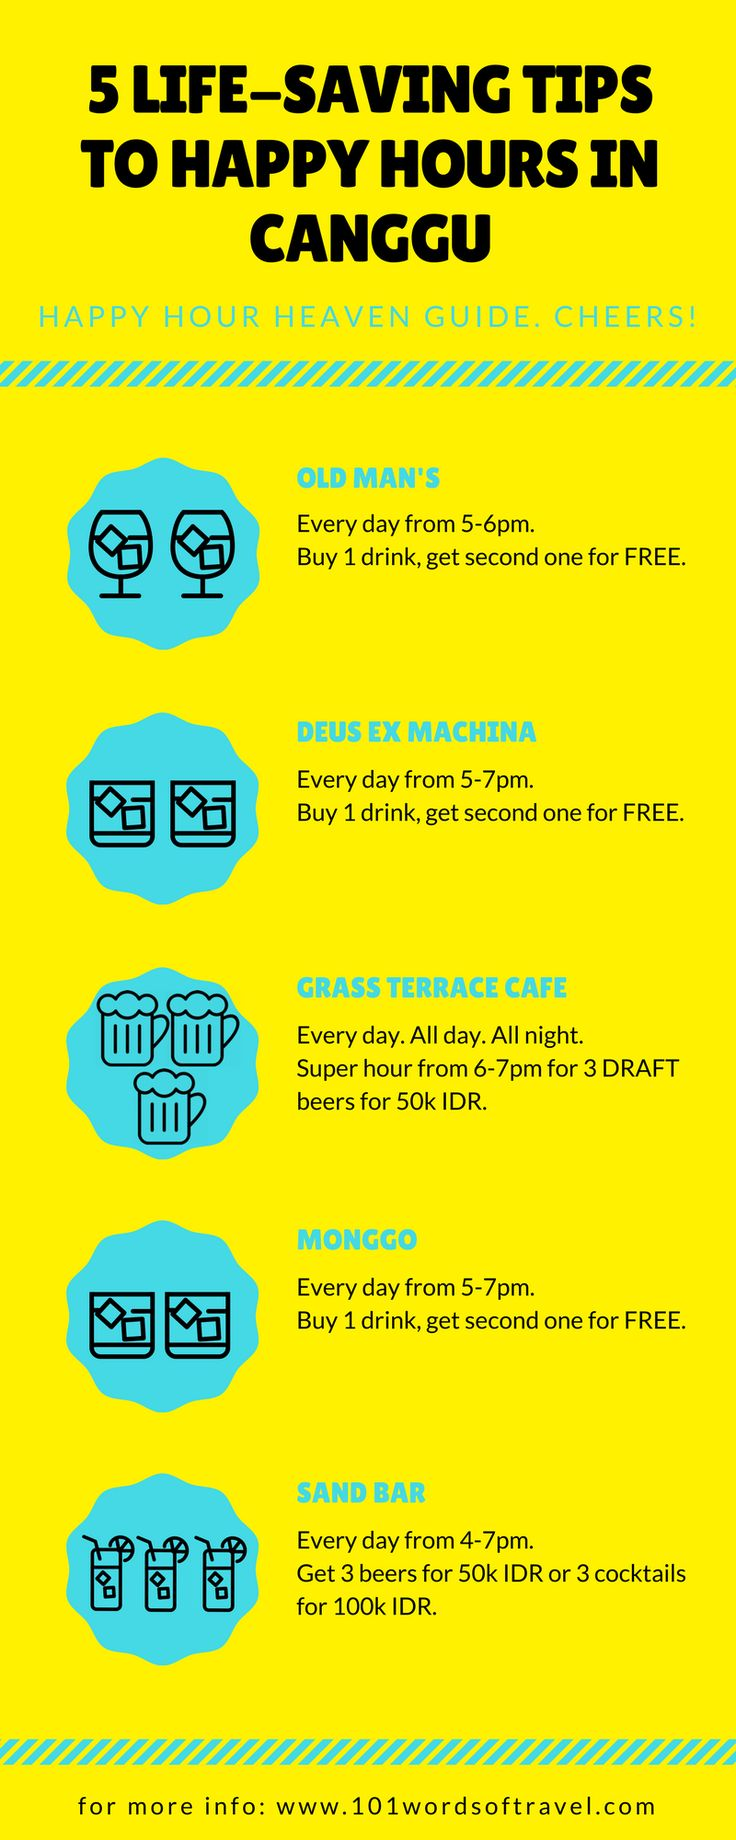 Infographic for 5 life-saving tips to happy hours in #Canggu. Spend your #vacation with style and #drink. For more #traveltips on Bali visit www.101wordsoftravel.com.